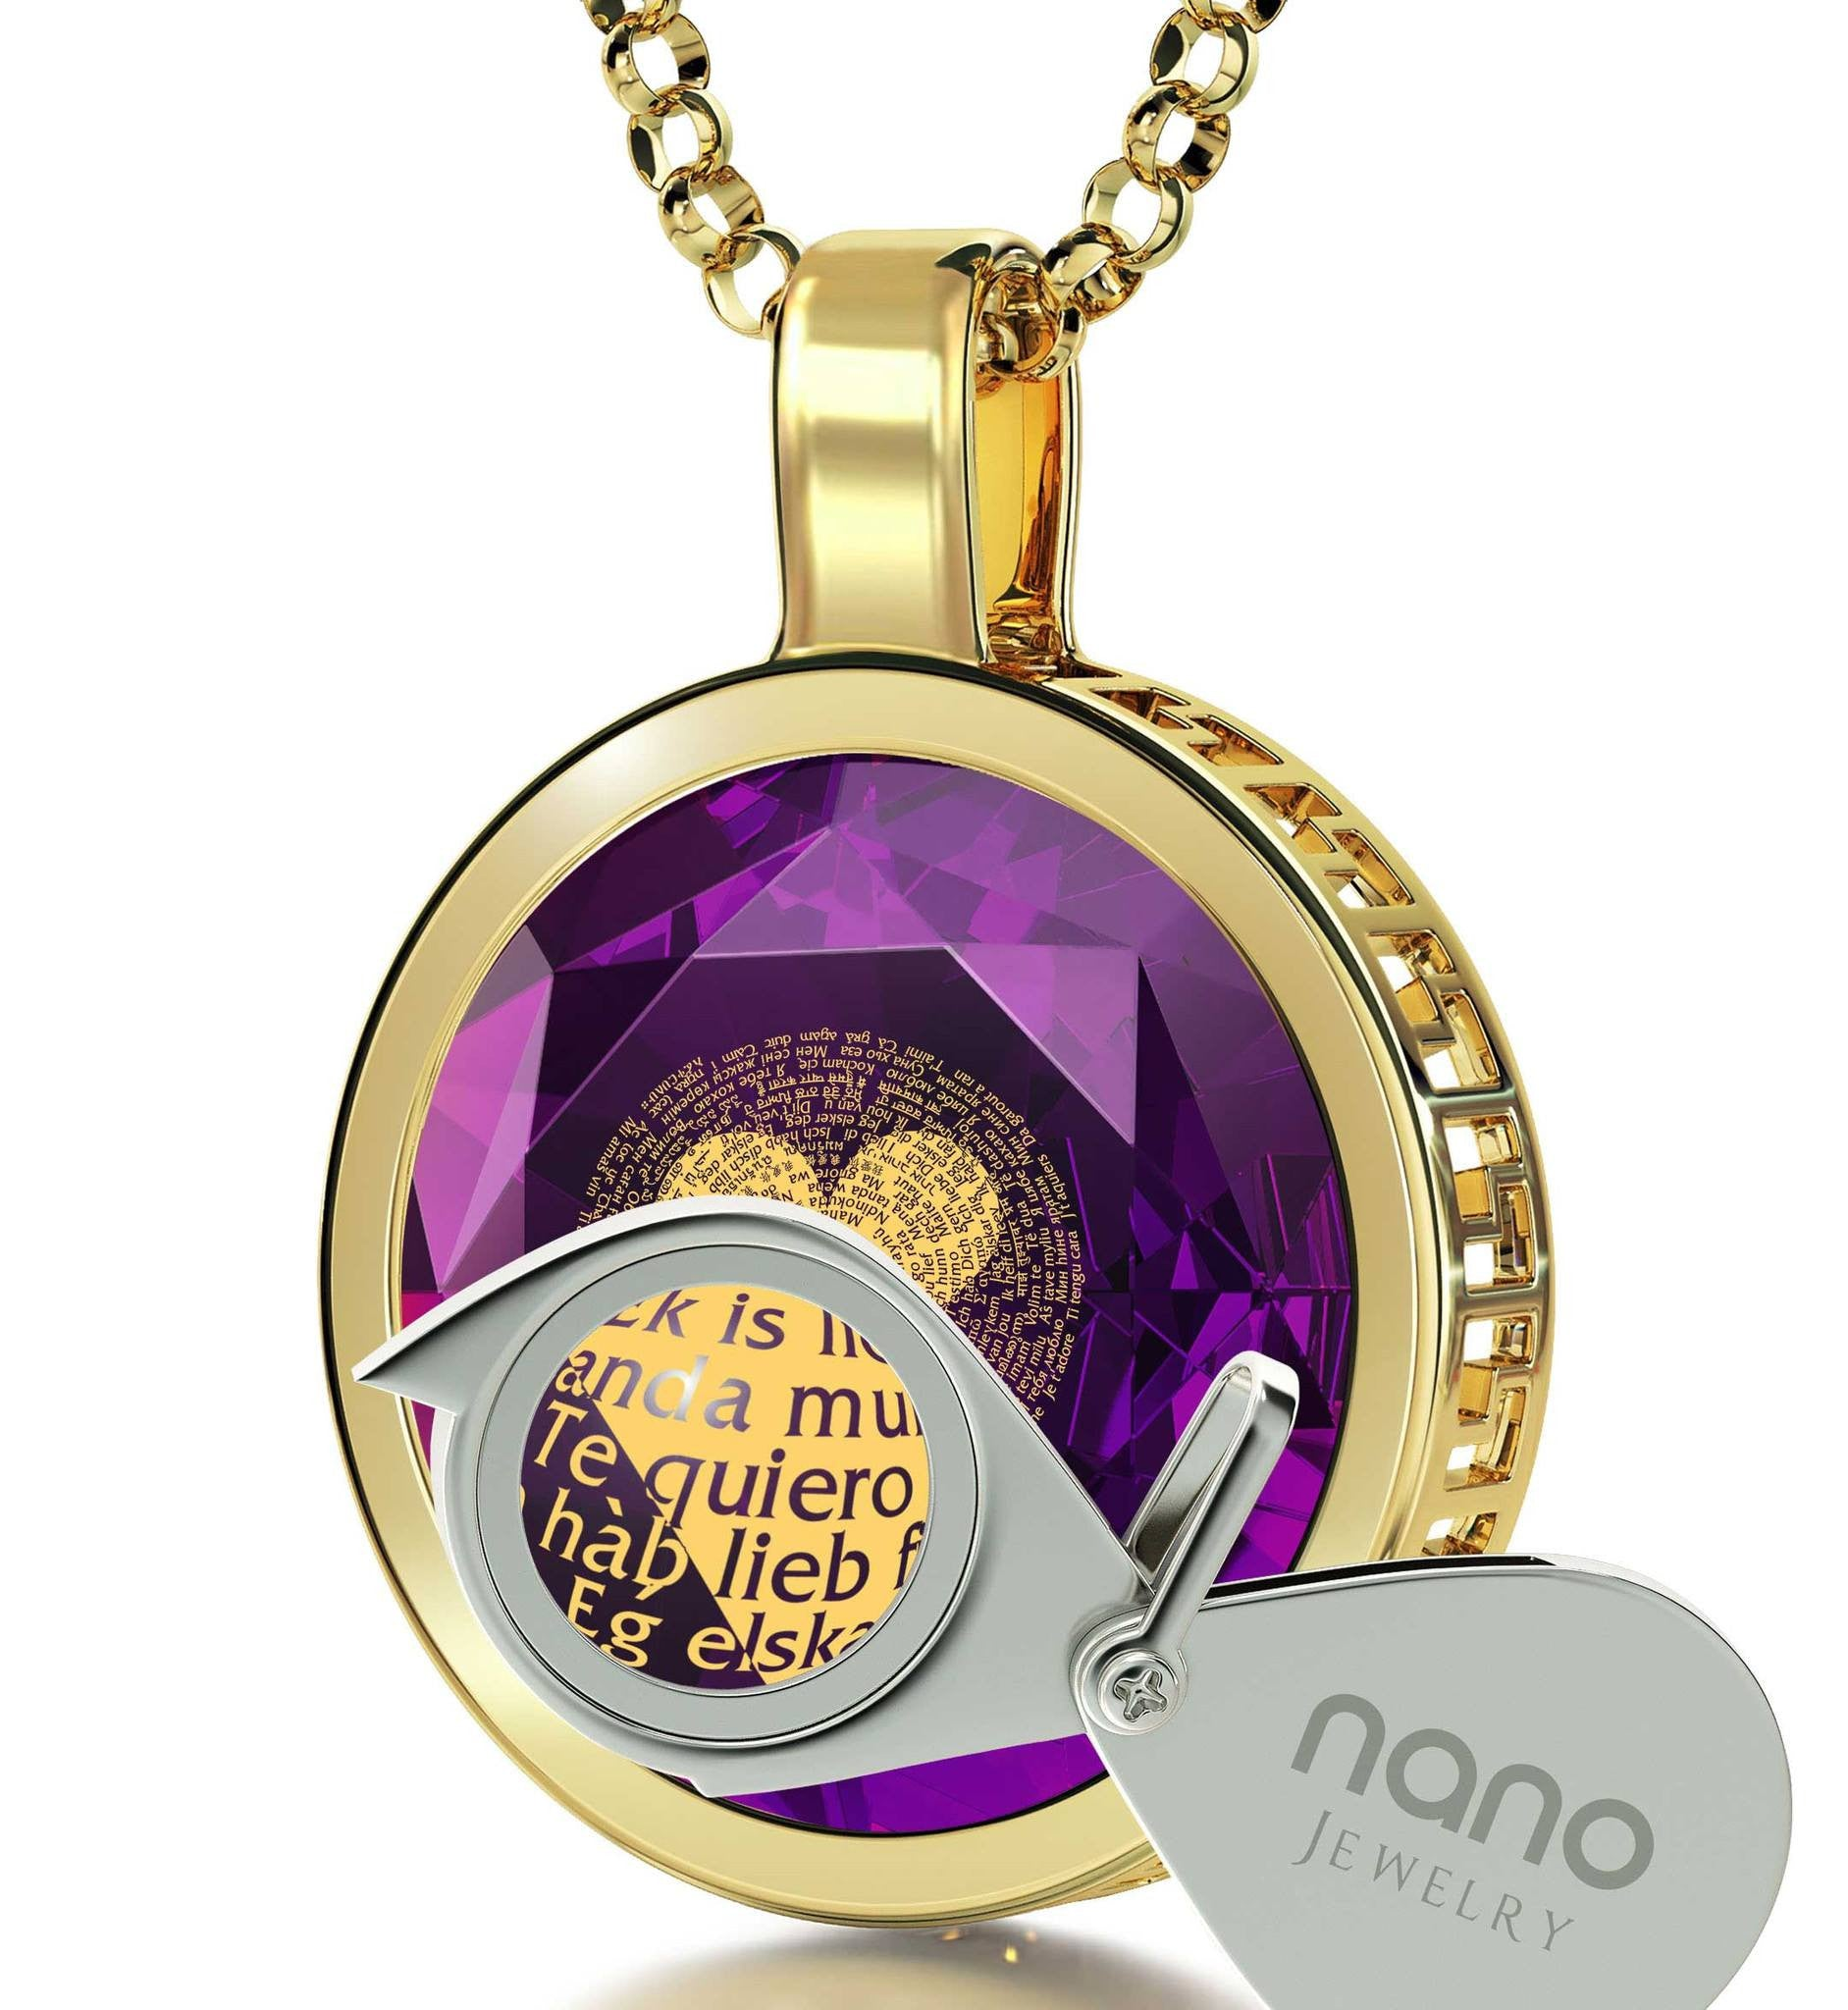 Valentines Ideas for Her: Engraved Pendants, Love in Different Languages, Girlfriend Gifts for Christmas by Nano Jewelry